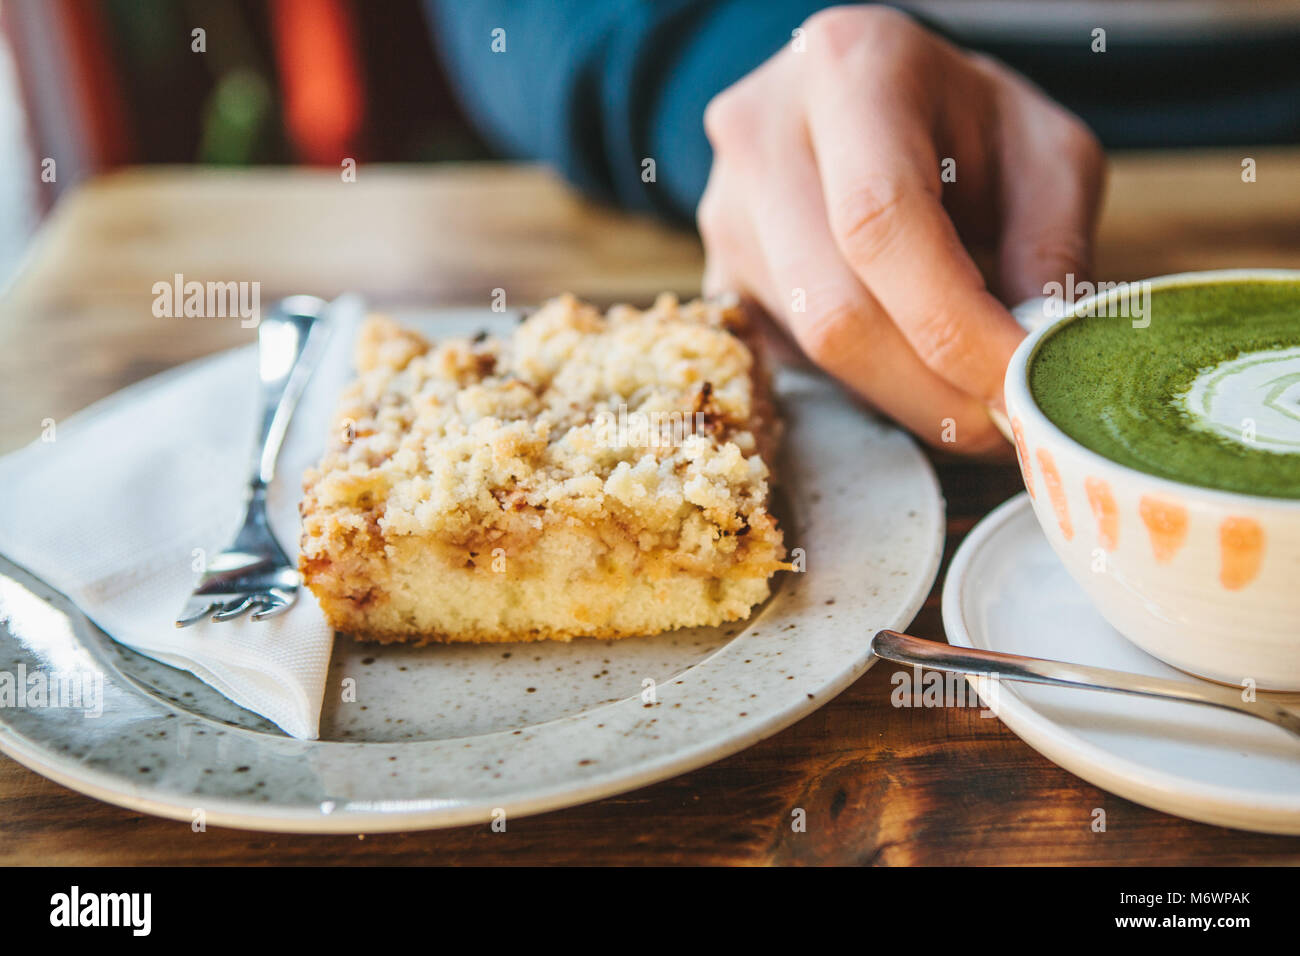 Close-up man's hand holding mug of green tea with beautiful pattern in the form of white foam next to dessert - Stock Image